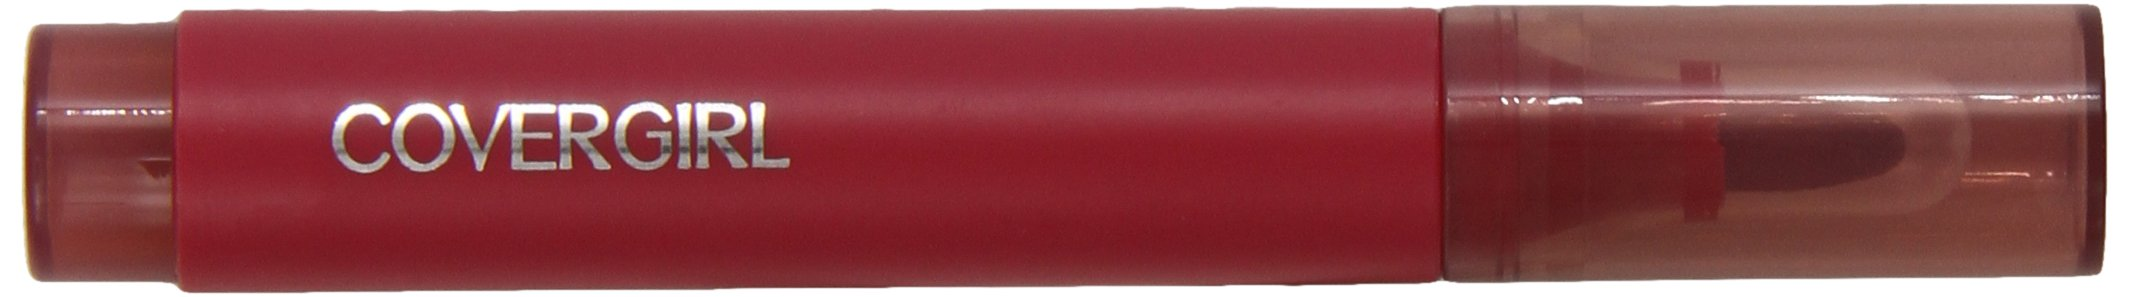 CoverGirl Lip Products CoverGirl Outlast Lipstain, Wild Berry Wink 440, 0.09-Ounce